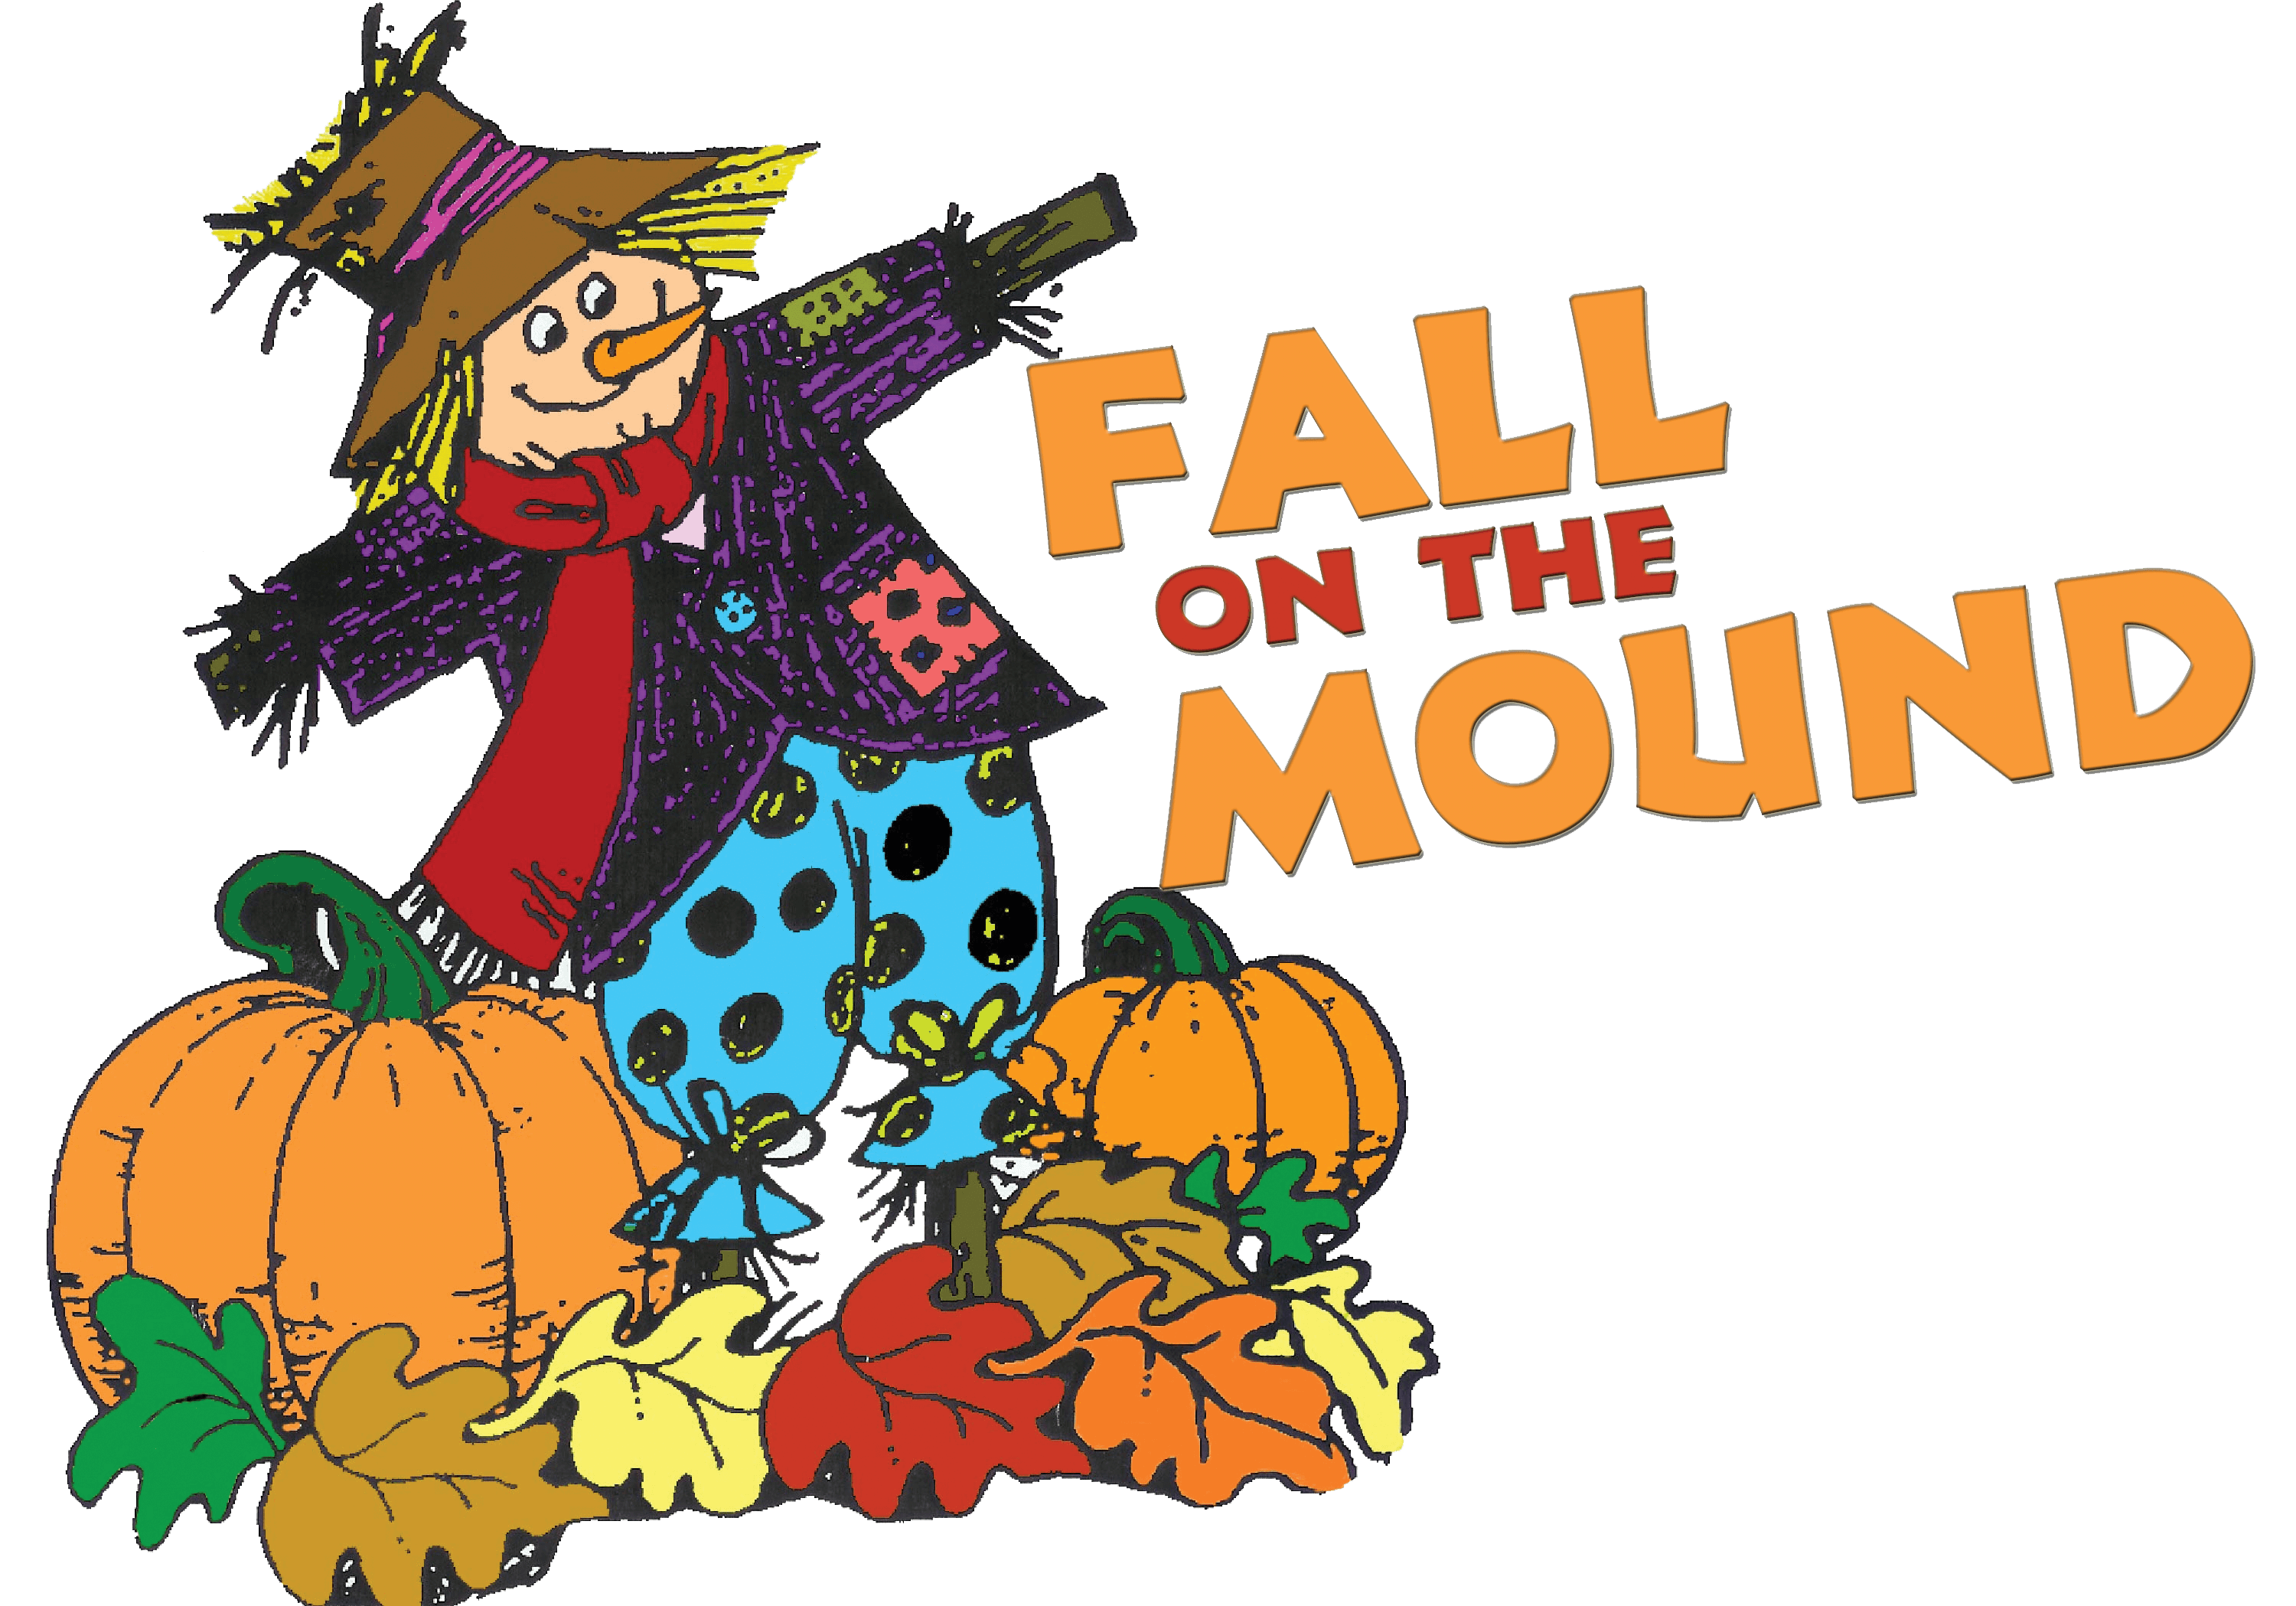 Missions clipart greeter. Fall on the mound